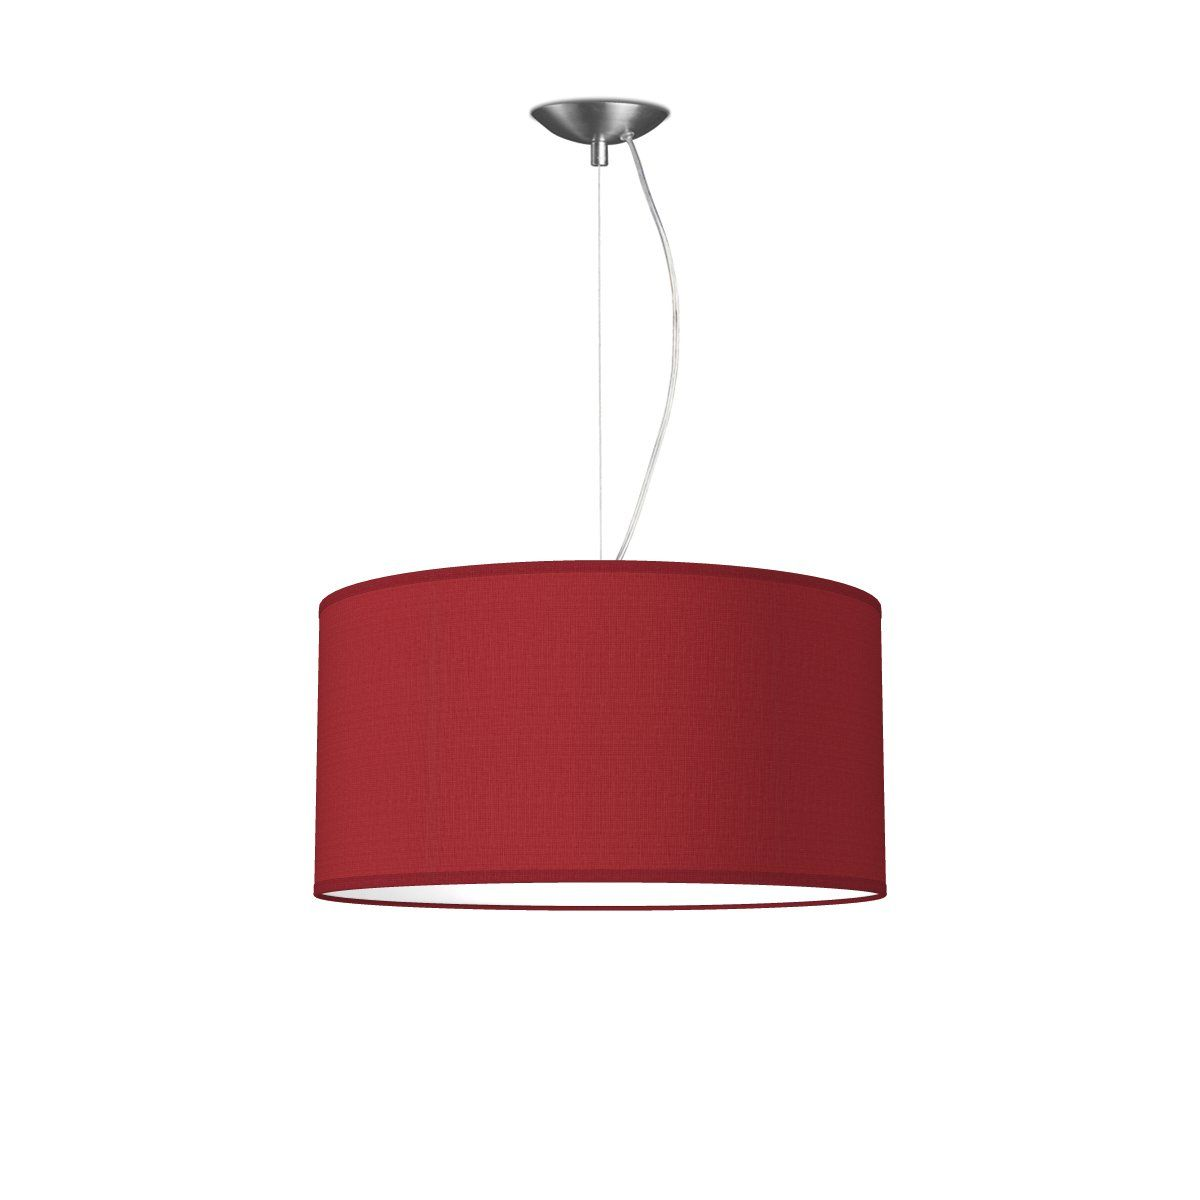 HOME SWEET HOME hanglamp basic deluxe bling Ø 45 cm - Pompeian red